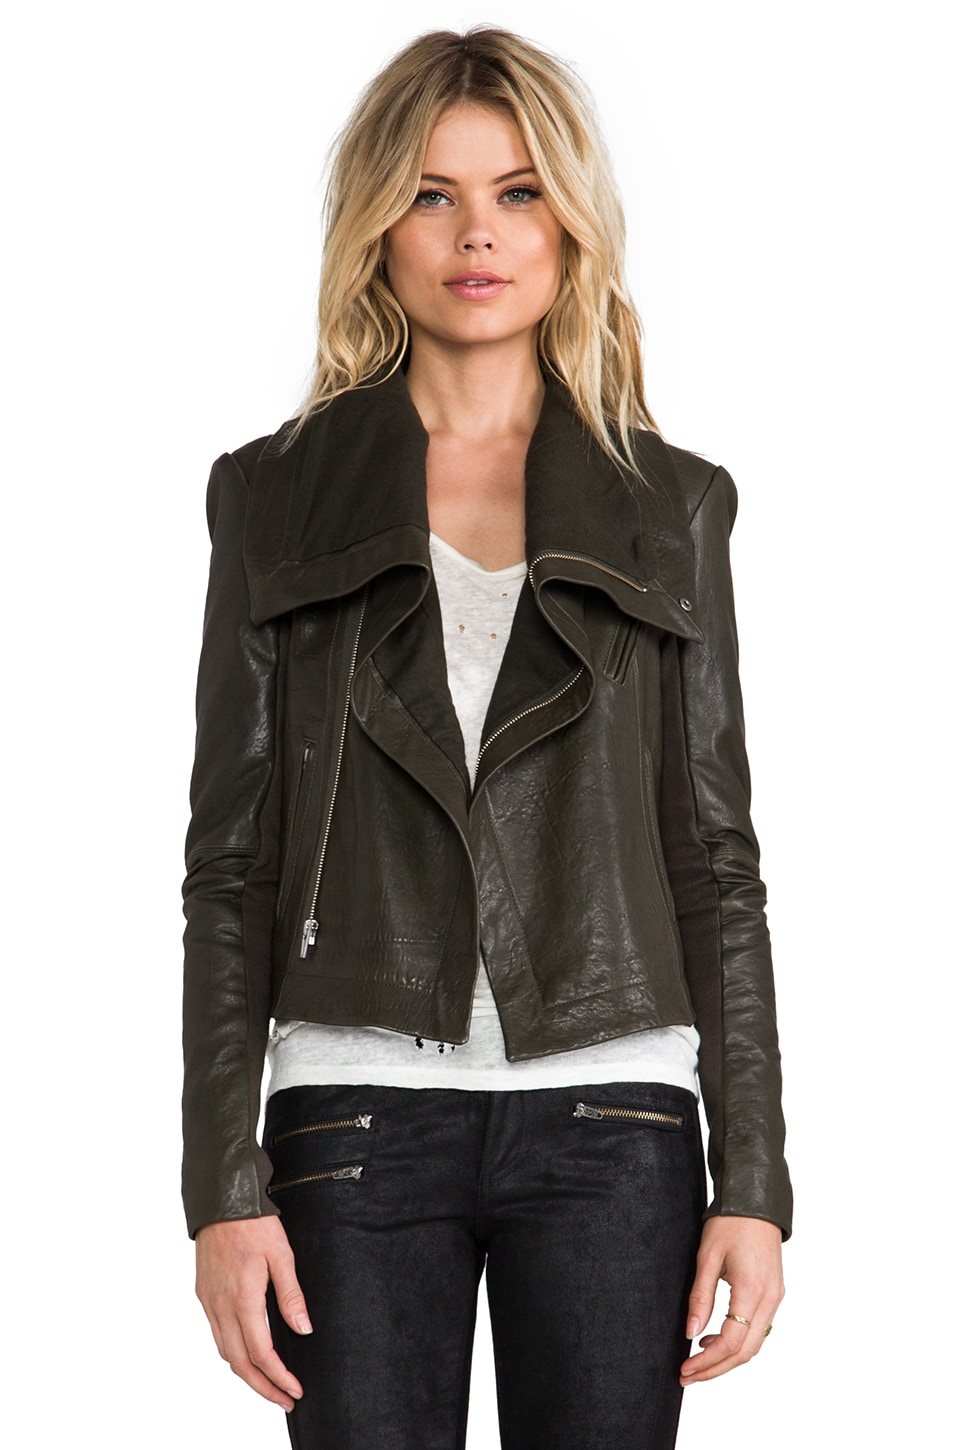 VEDA Max Classic Leather Jacket in Army